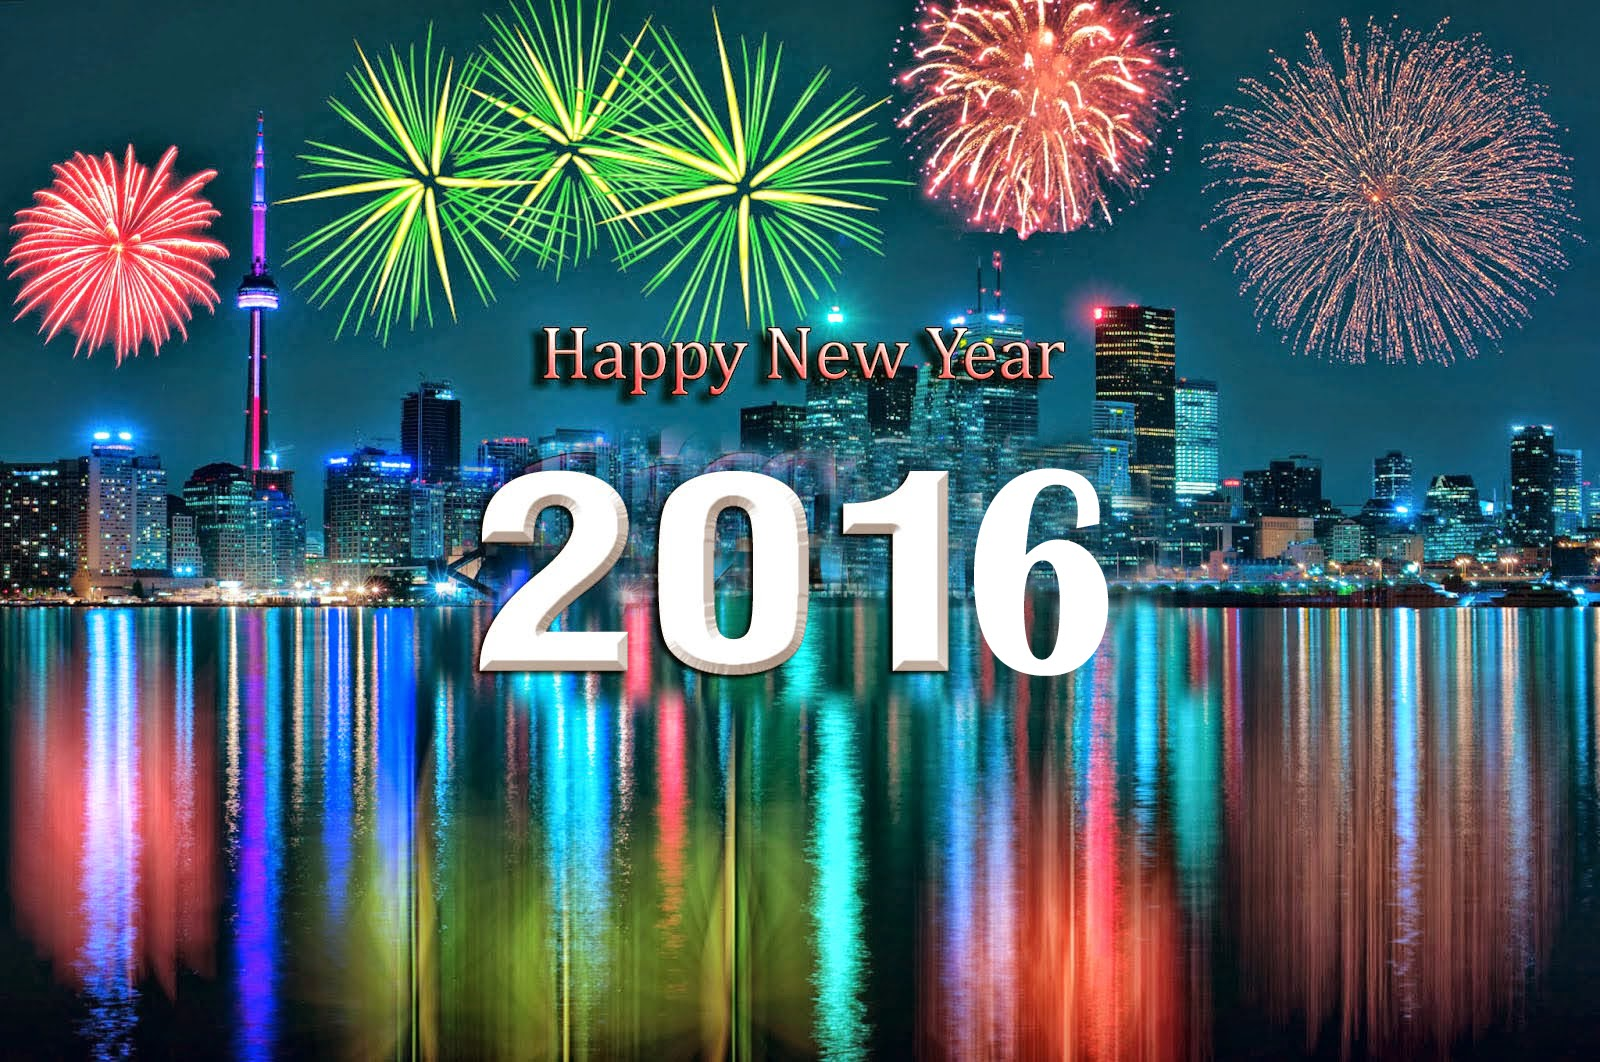 Amazing New Year Wishes Wallpapers: Amazing New Year 2016 Wallpaper